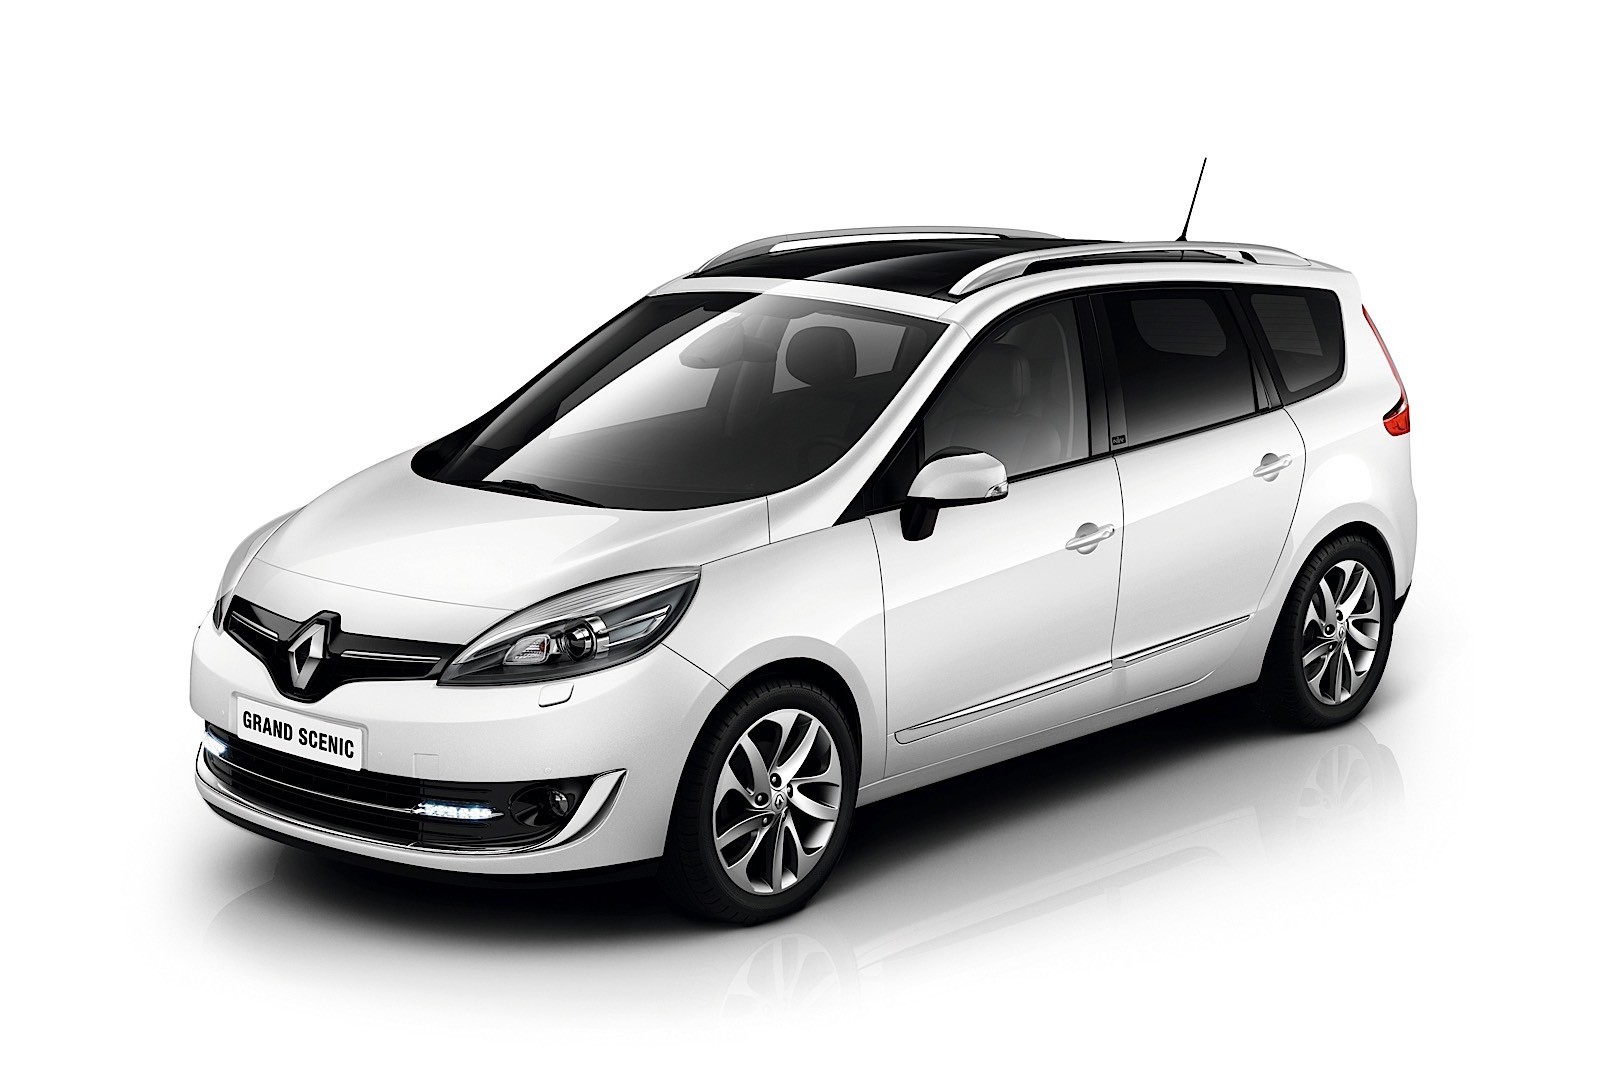 renault grand scenic specs 2013 2014 2015 2016 2017. Black Bedroom Furniture Sets. Home Design Ideas